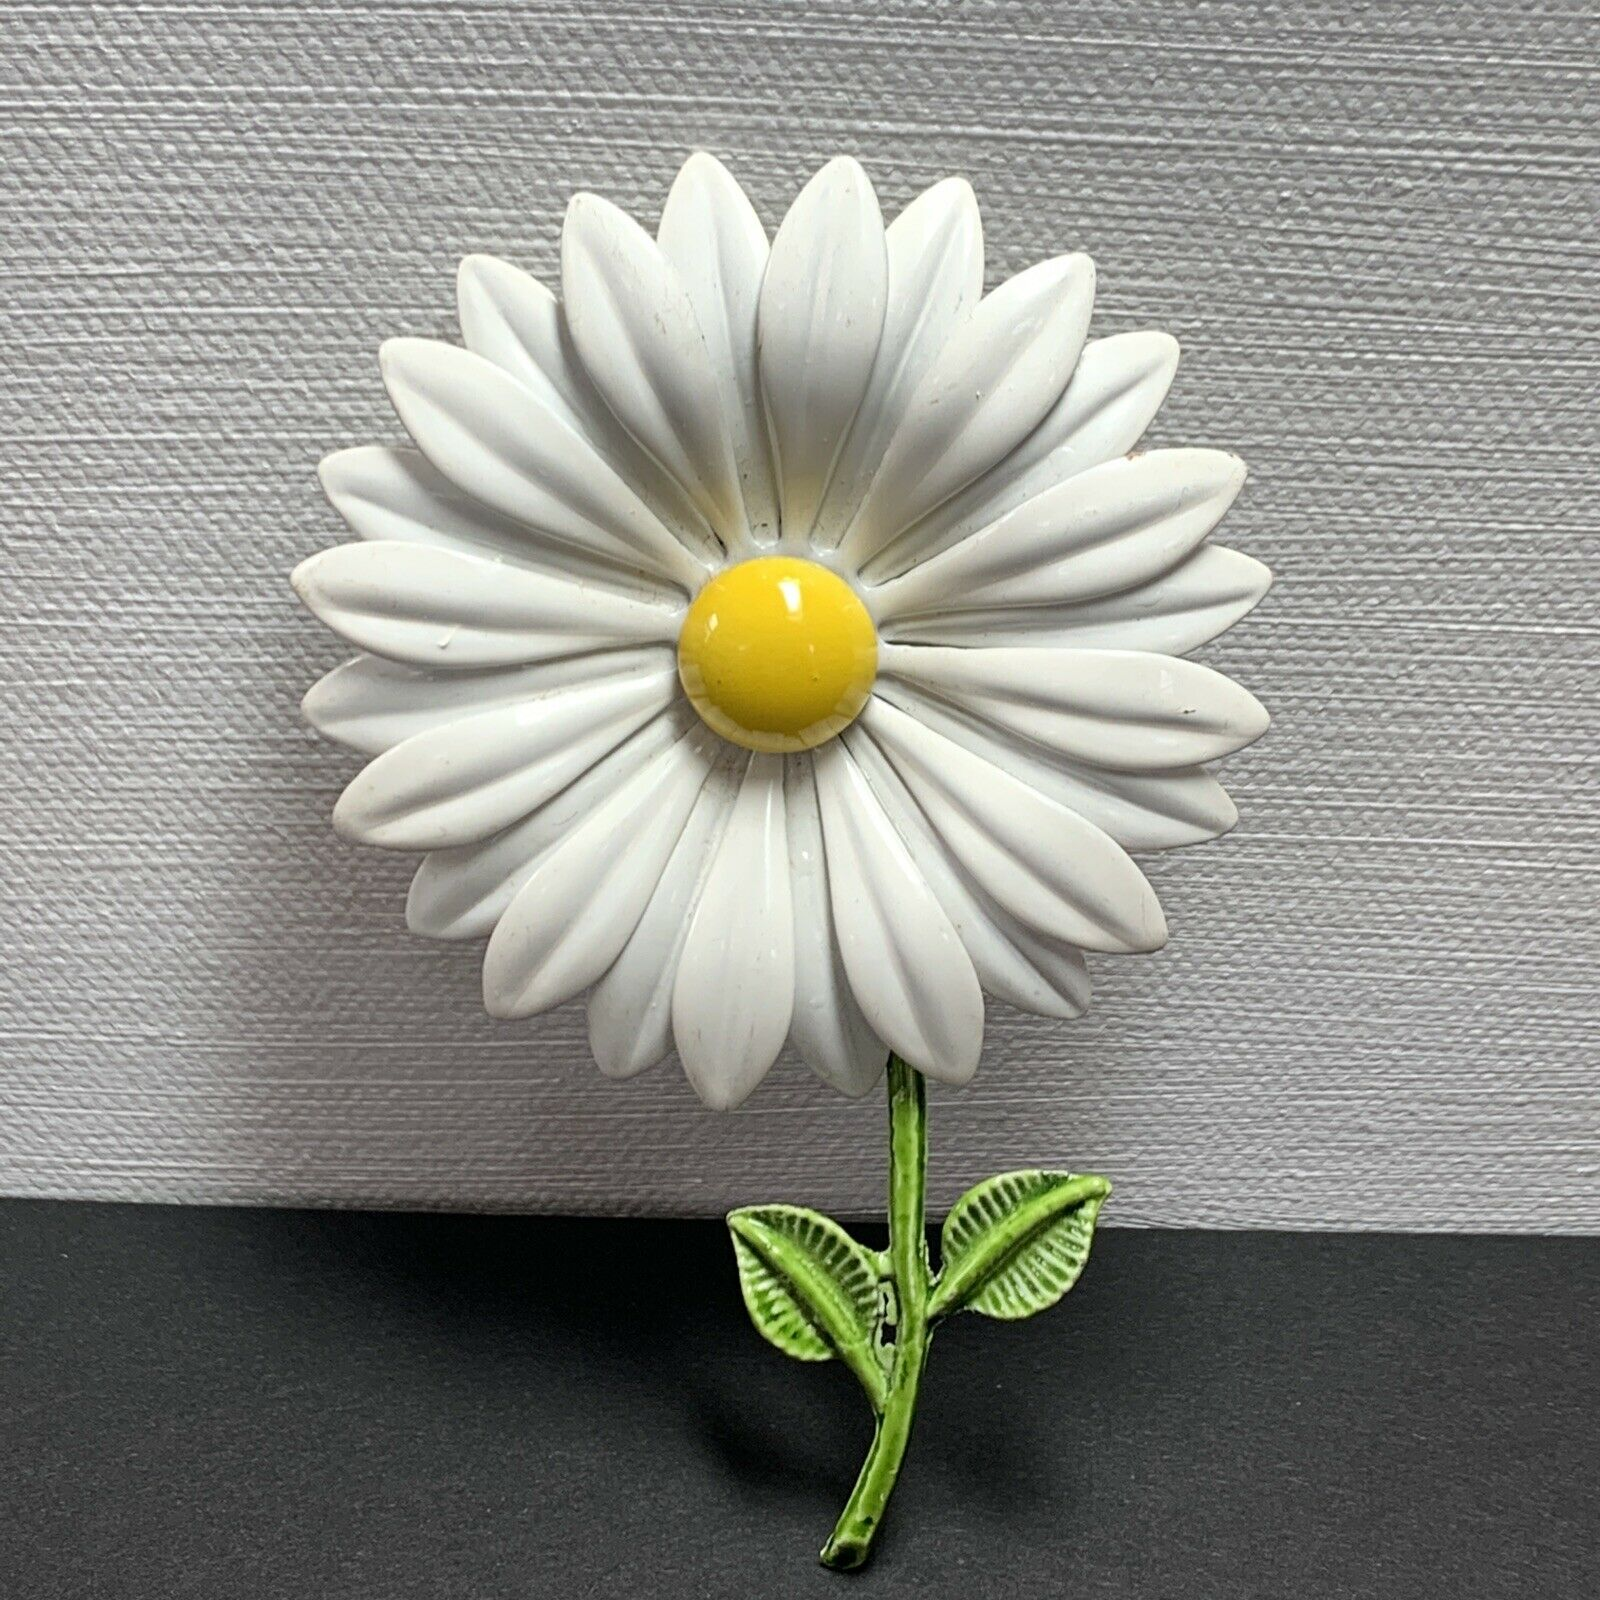 Vintage Sarah Coventry Yellow Daisy Brooch Pin MOD Flower Power Brooch Pin Large Yellow Enamel Gold Tone Daisy Flower Brooch Pin